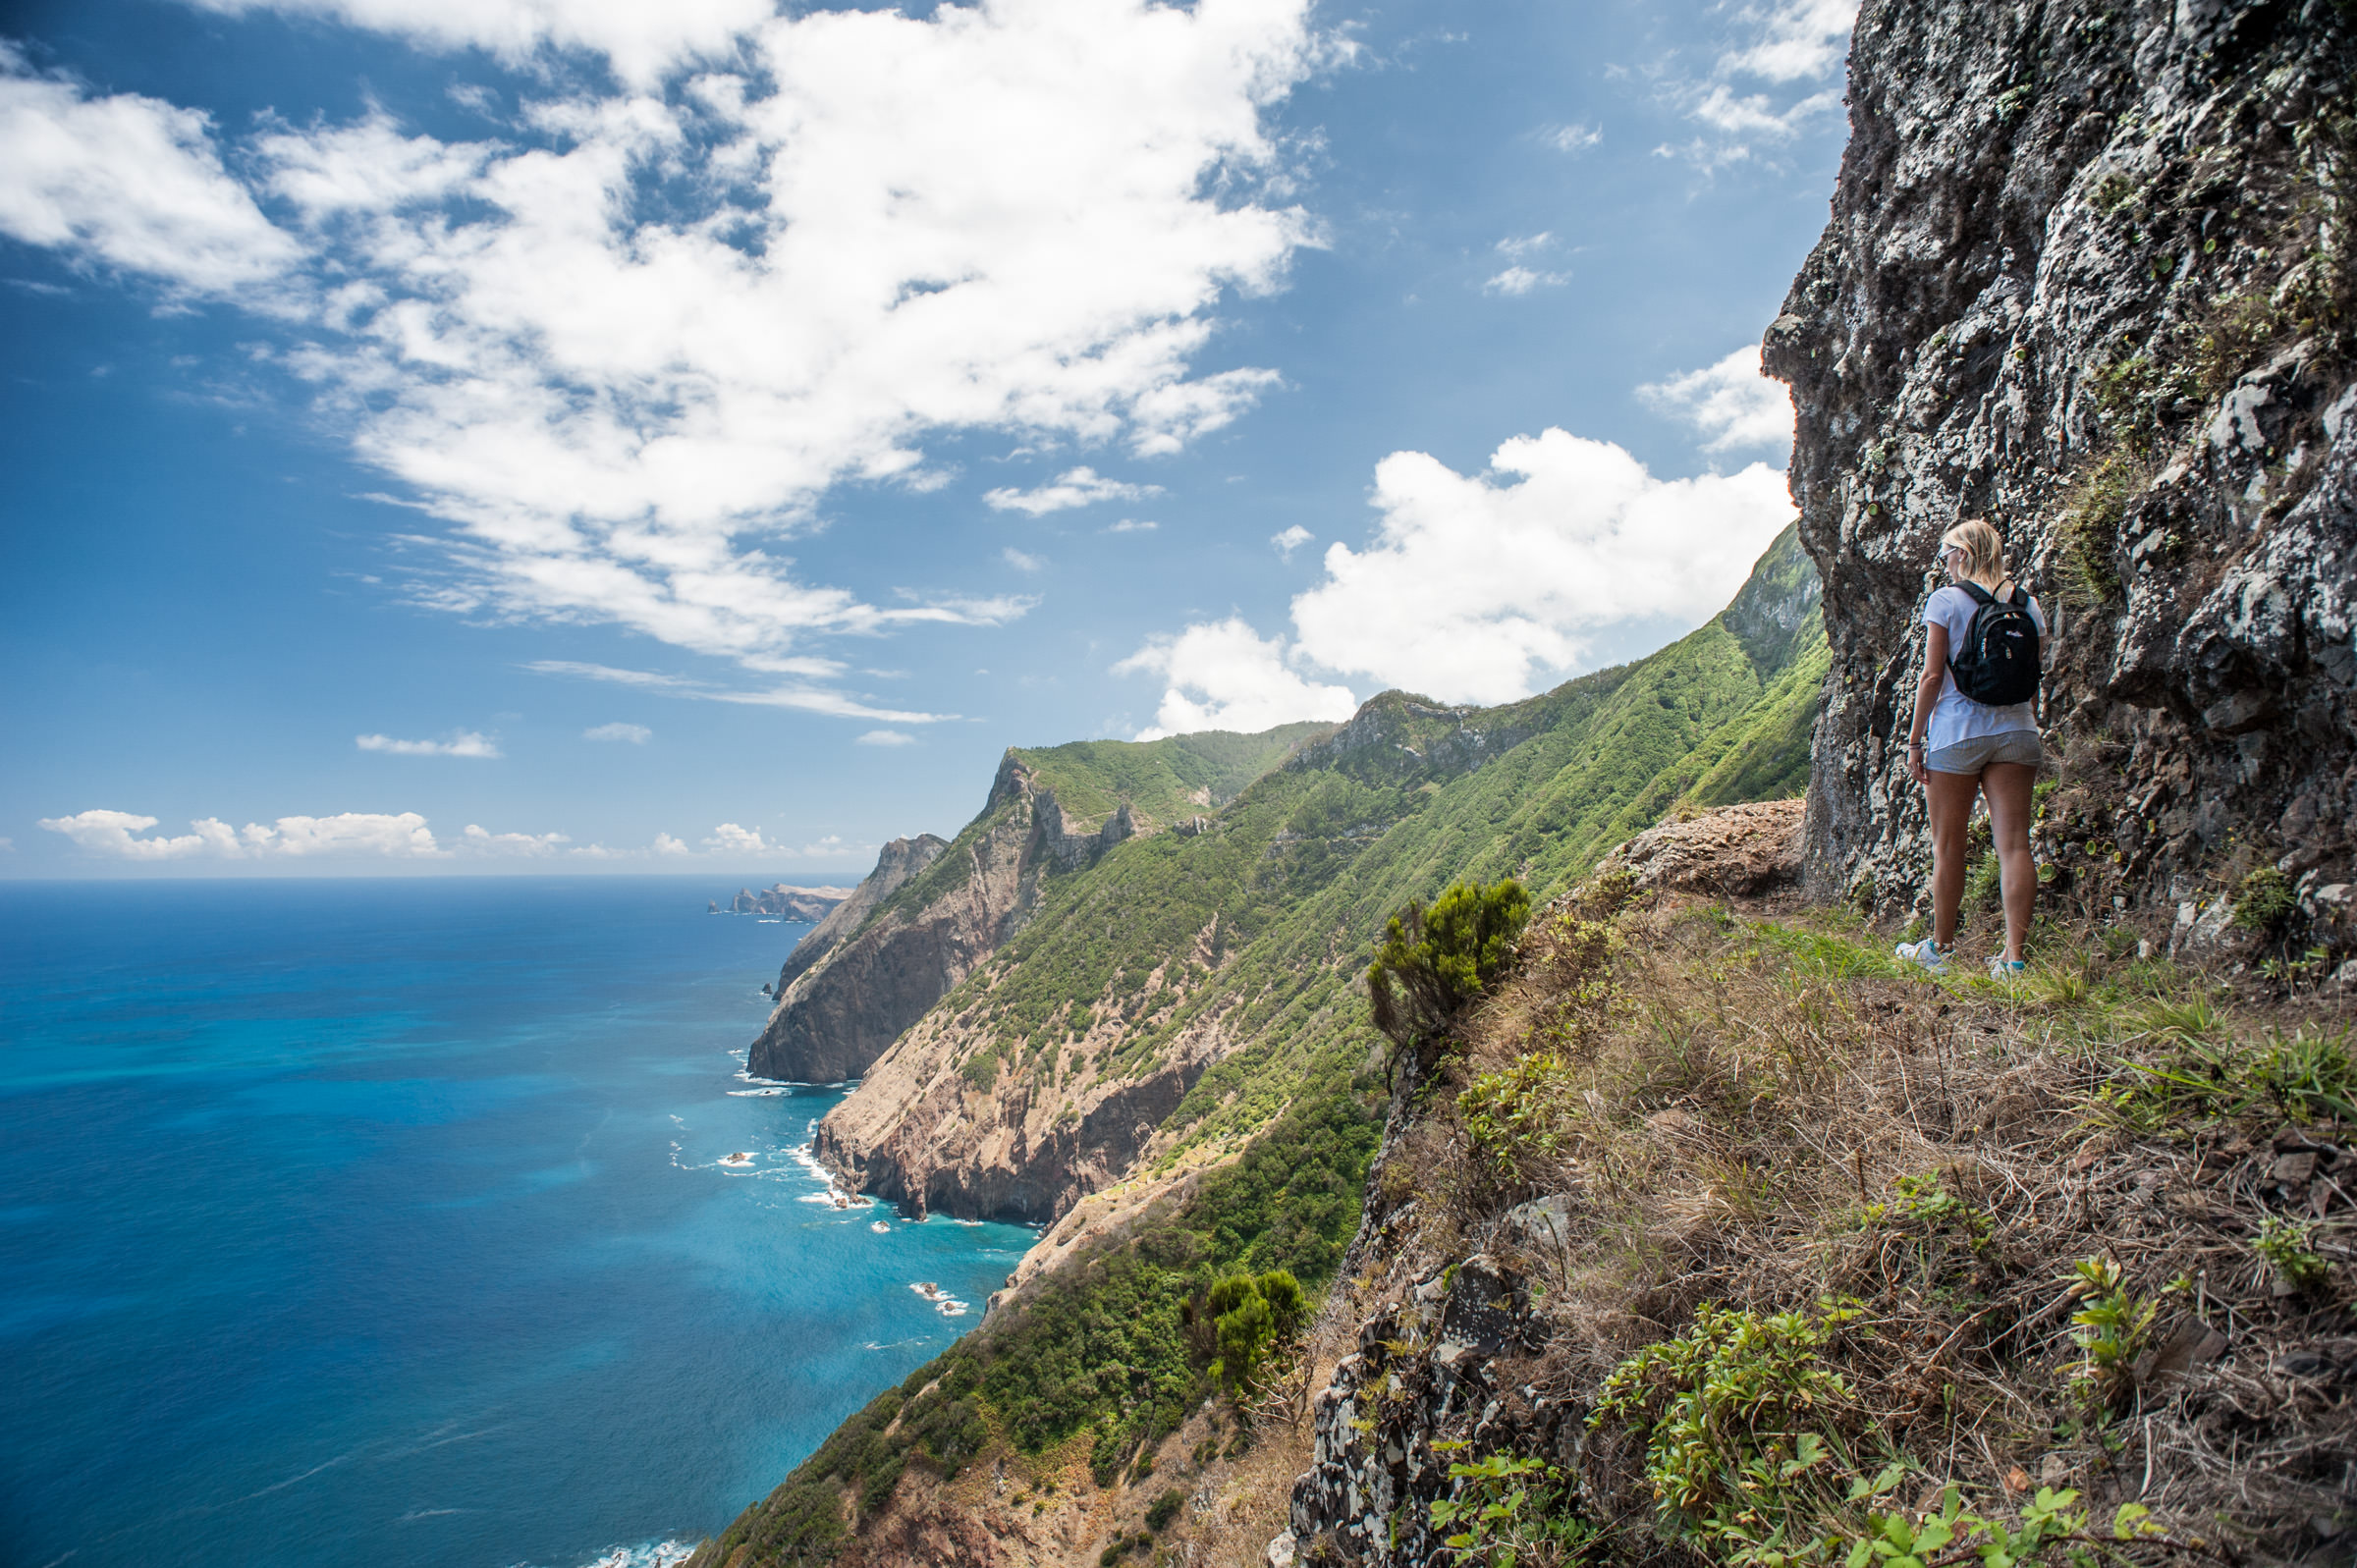 a vertiginous hike from Porto da Cruz to Machico, with the cliffs and sea below